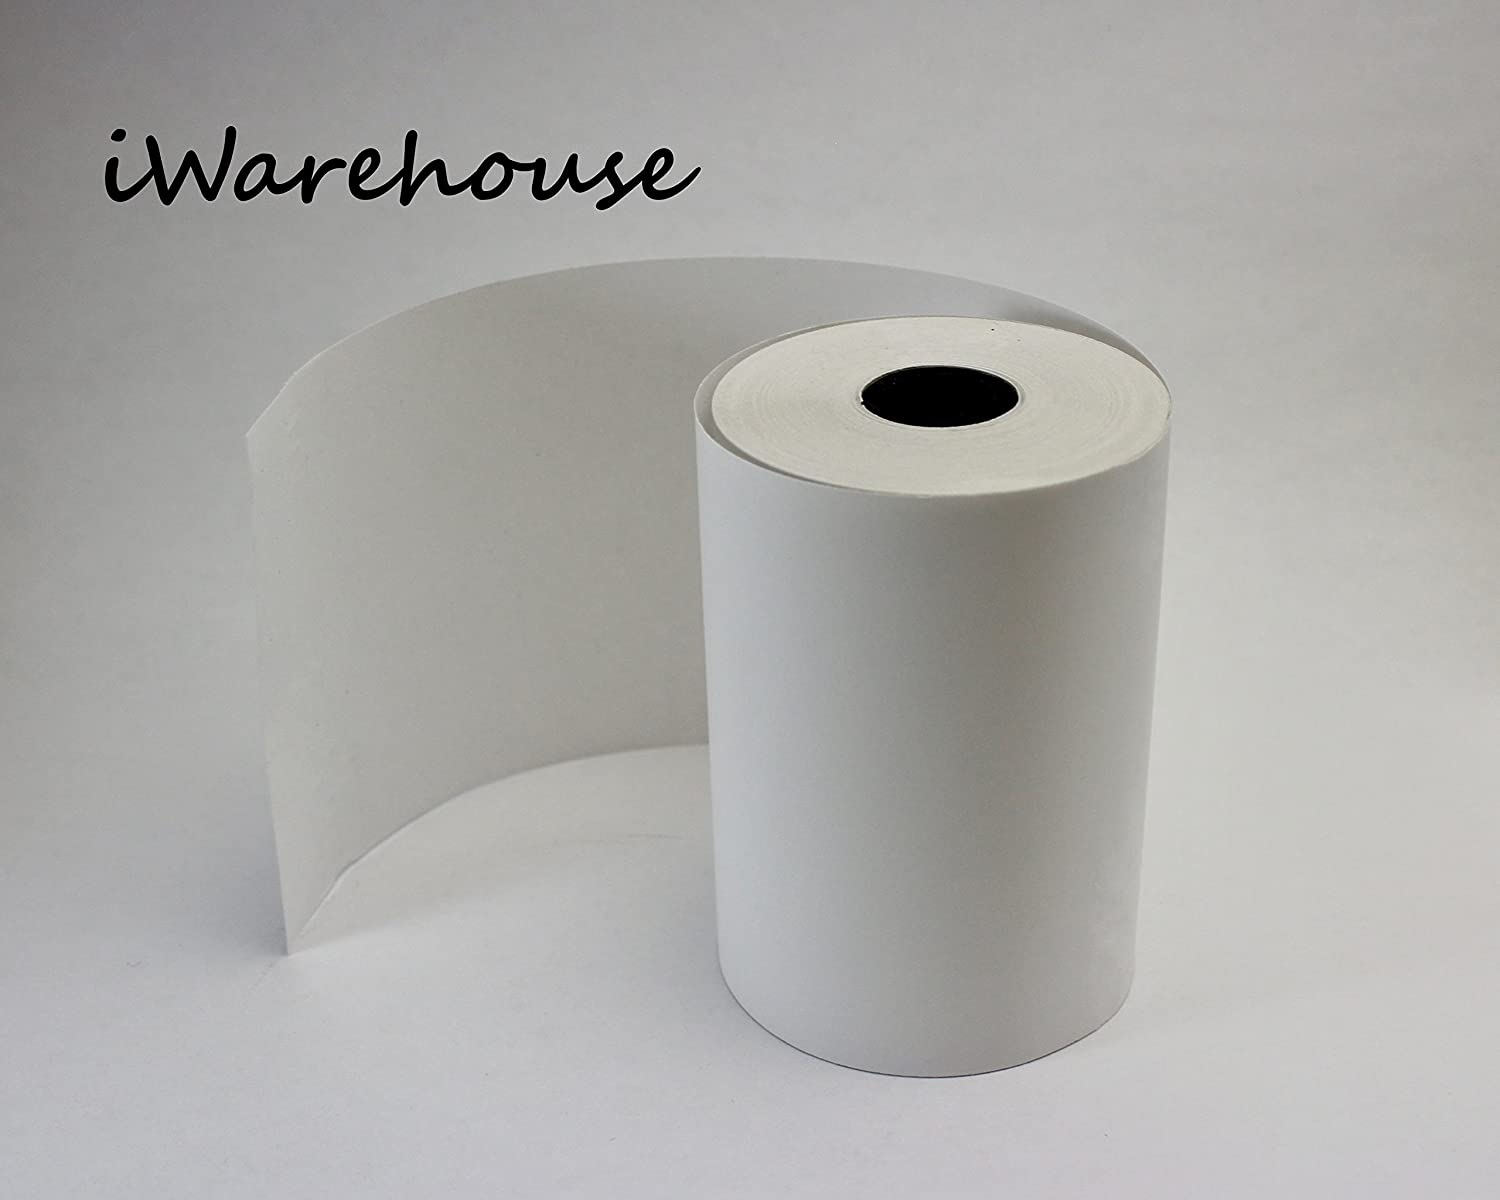 2 -1/4 x 62 ft Thermal Paper Rolls 100 Count by iWarehouse | Credit or Debit Card terminal, wireless terminal, Hard Plastic Core NO PAPER WASTAGE| Platinum White Paper , 100 Rolls per Box